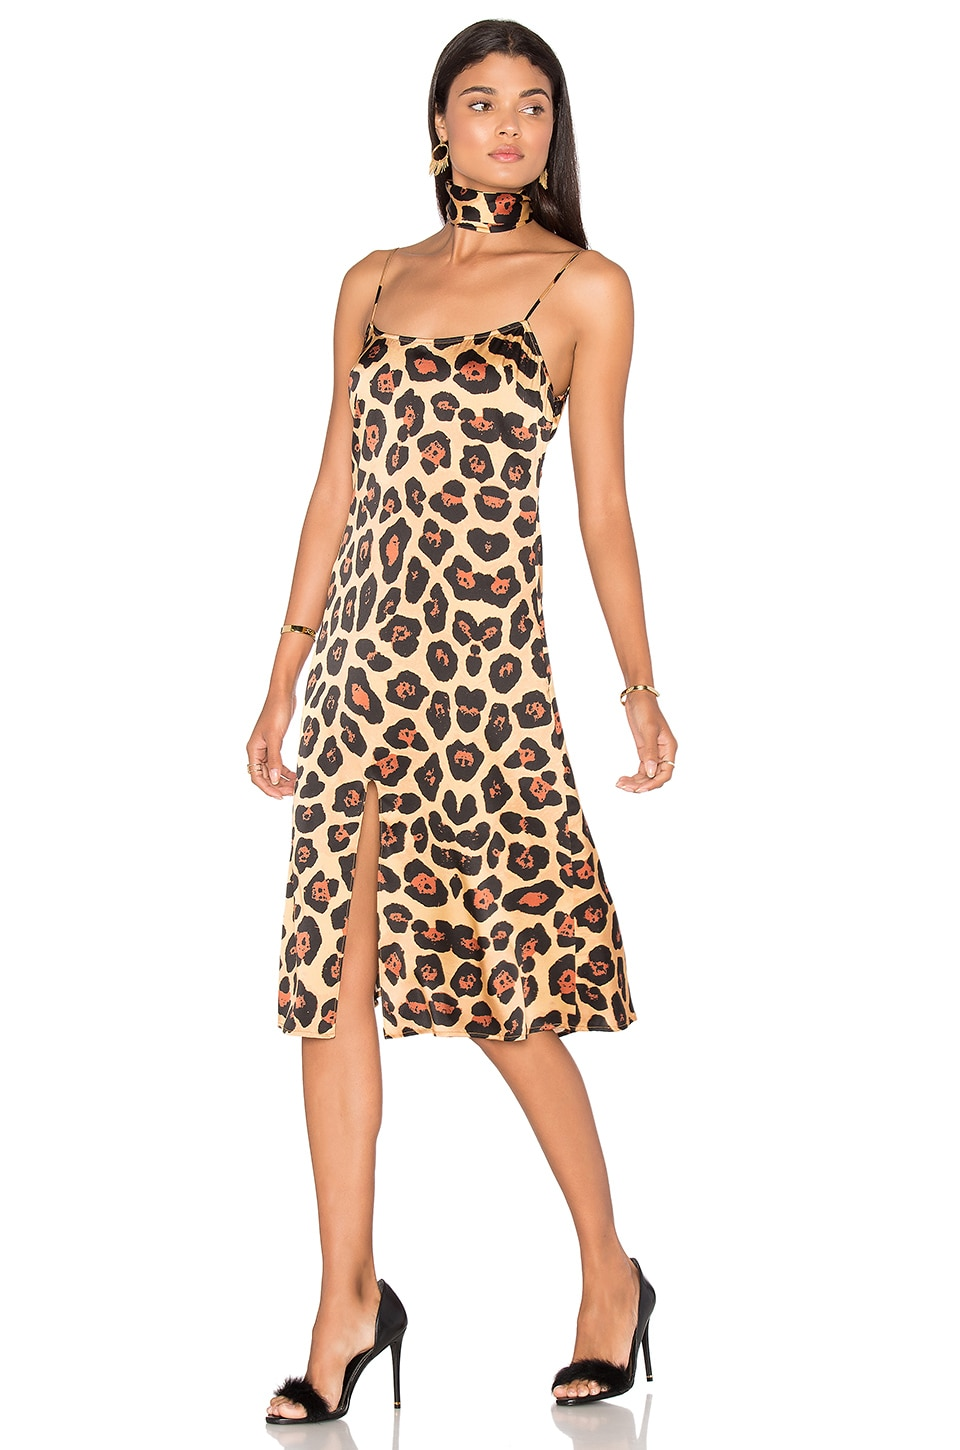 LPA Dress 14 in Painted Leopard